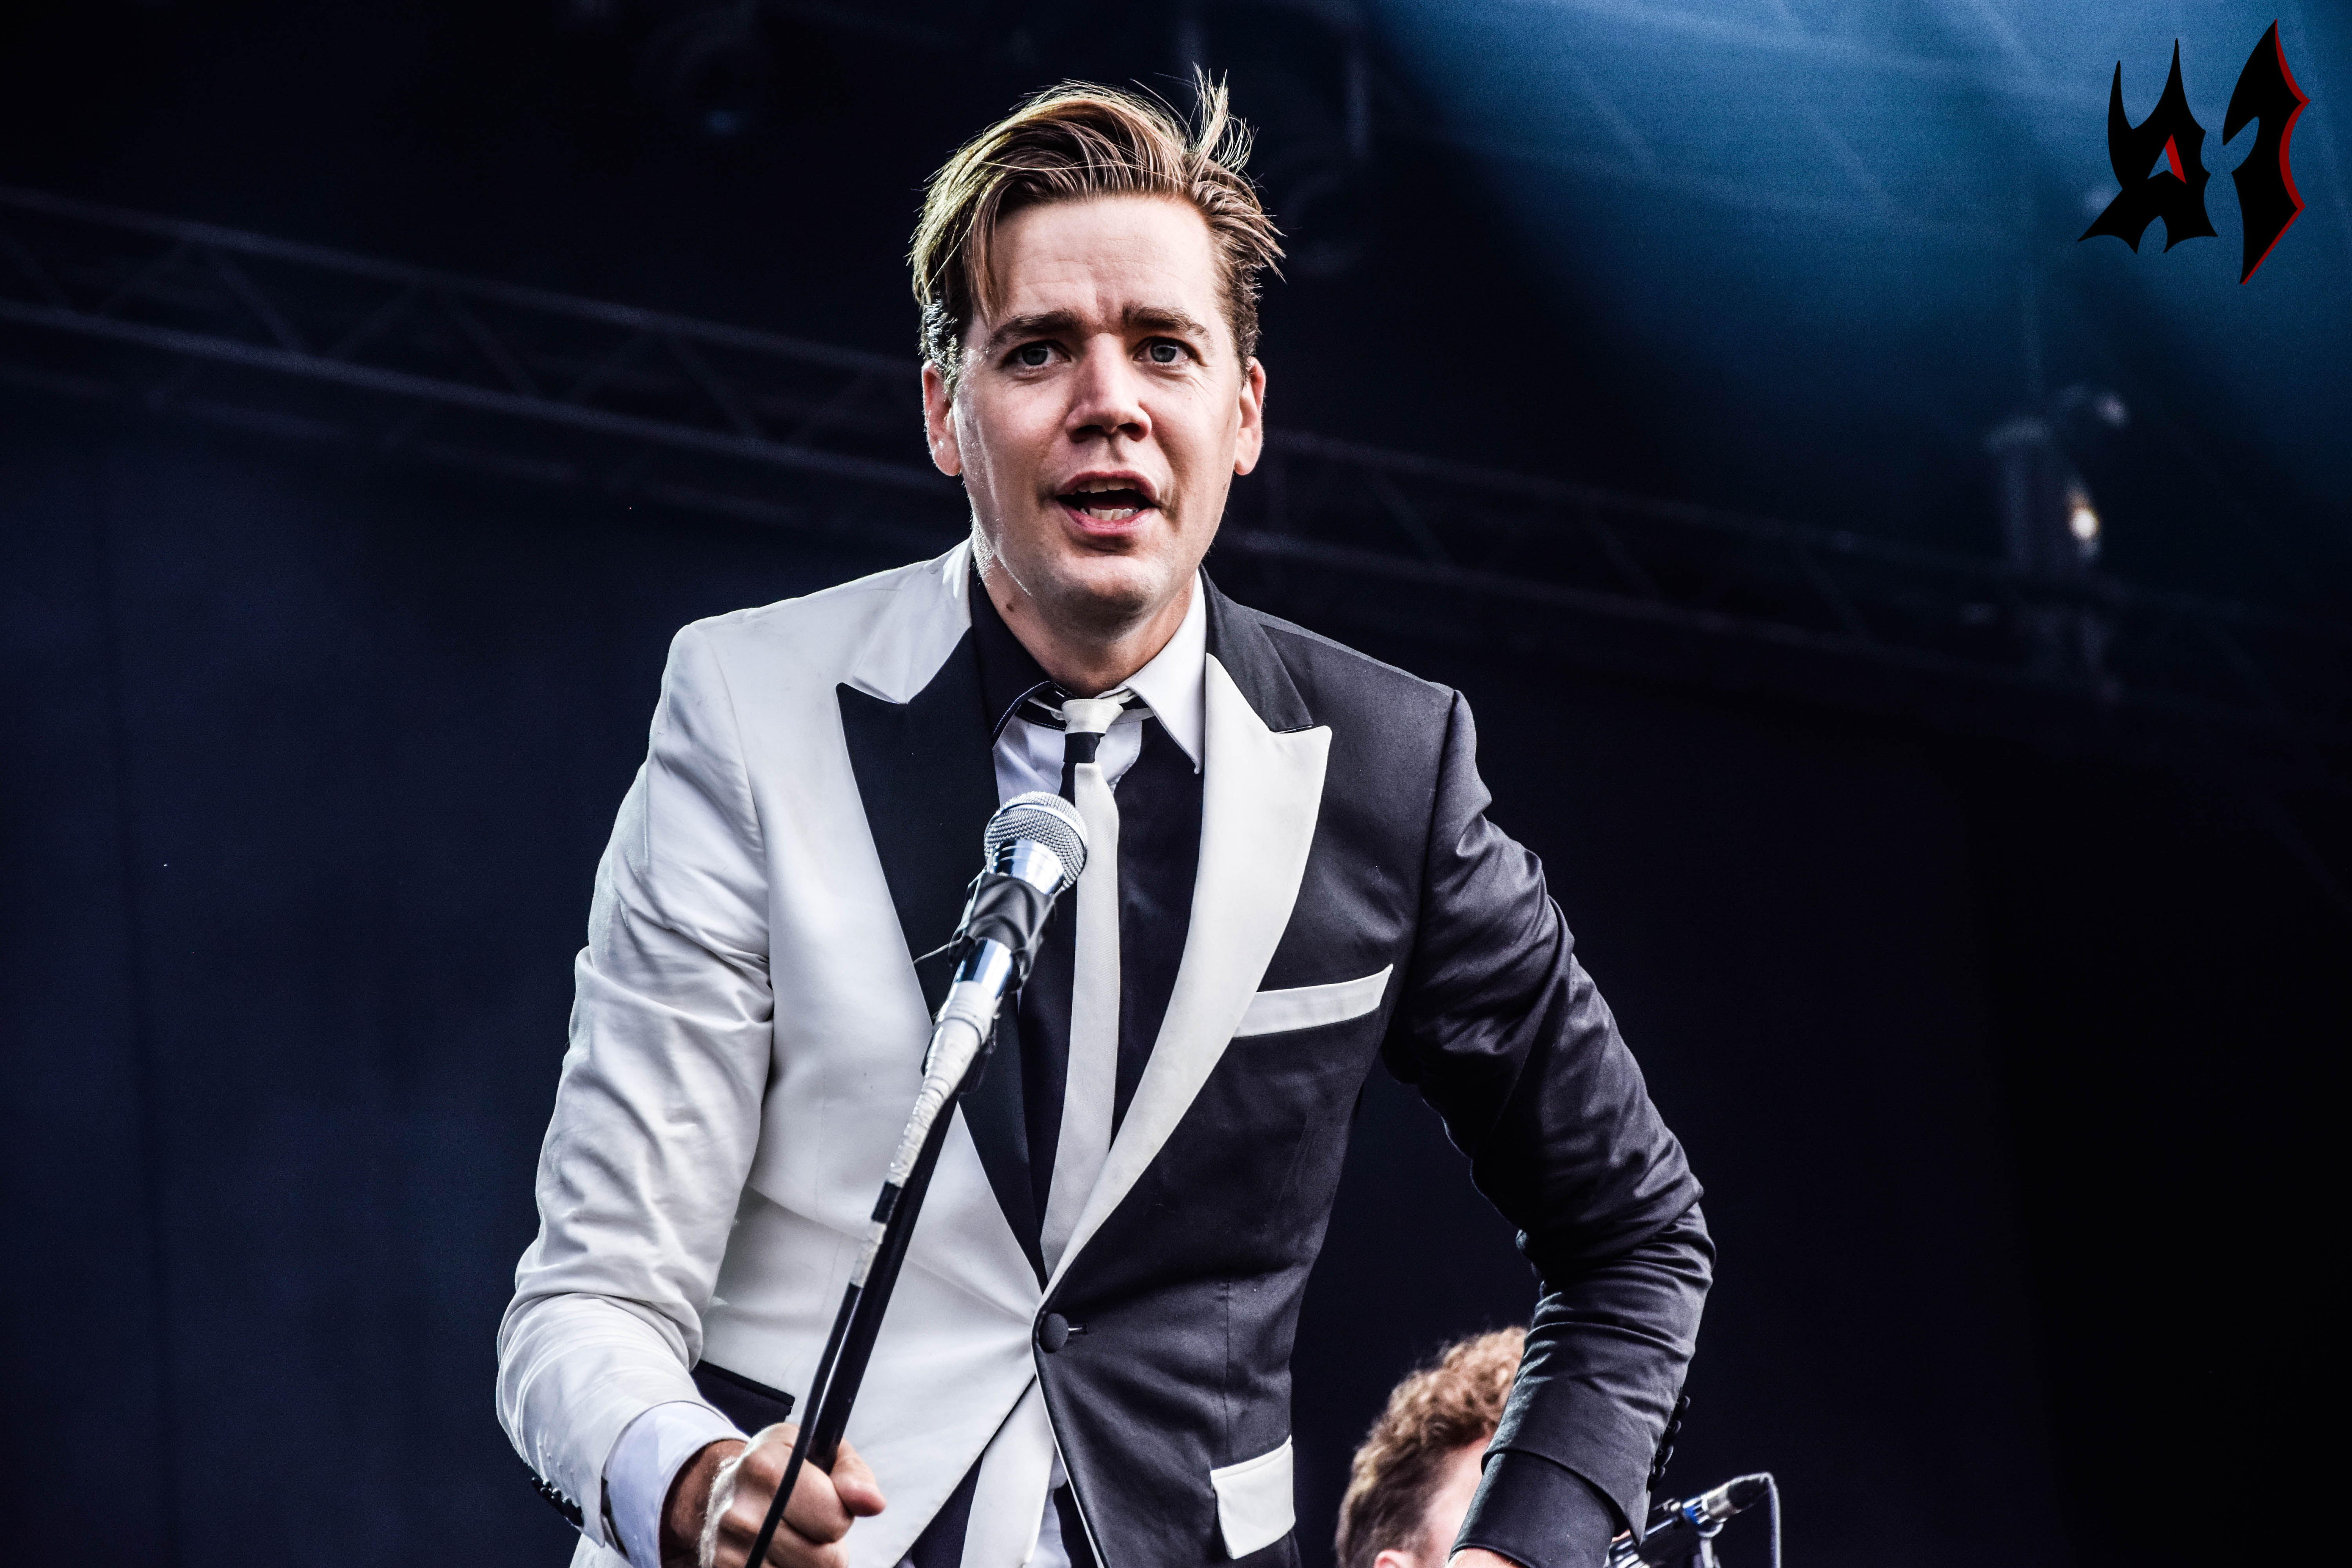 Donwload 2018 – Day 3 - The Hives 4